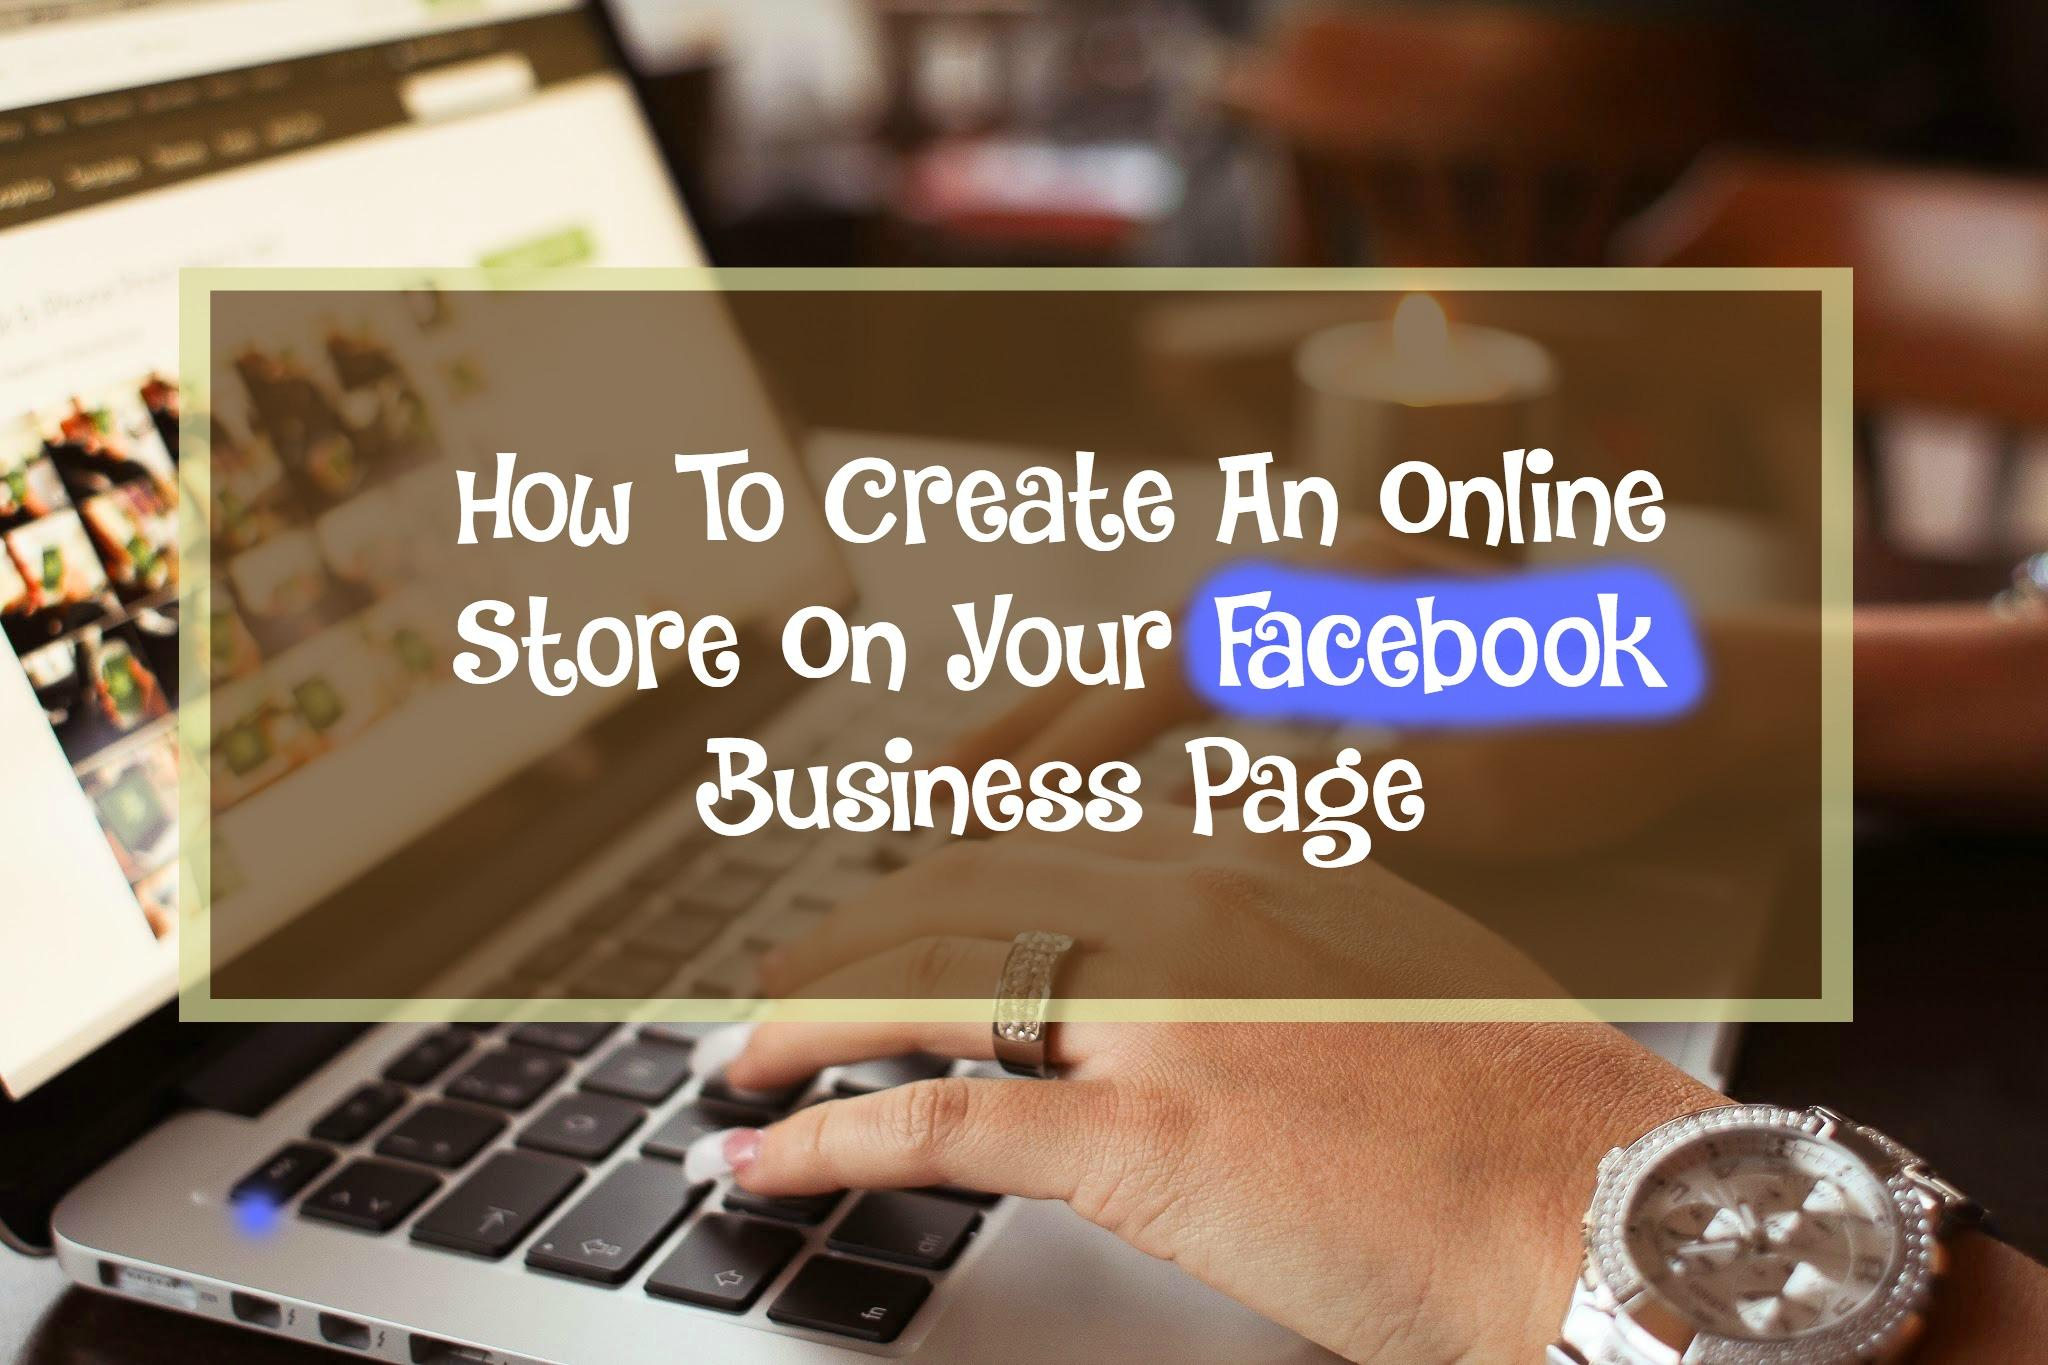 how to create an online store on your facebook business page class projects see all